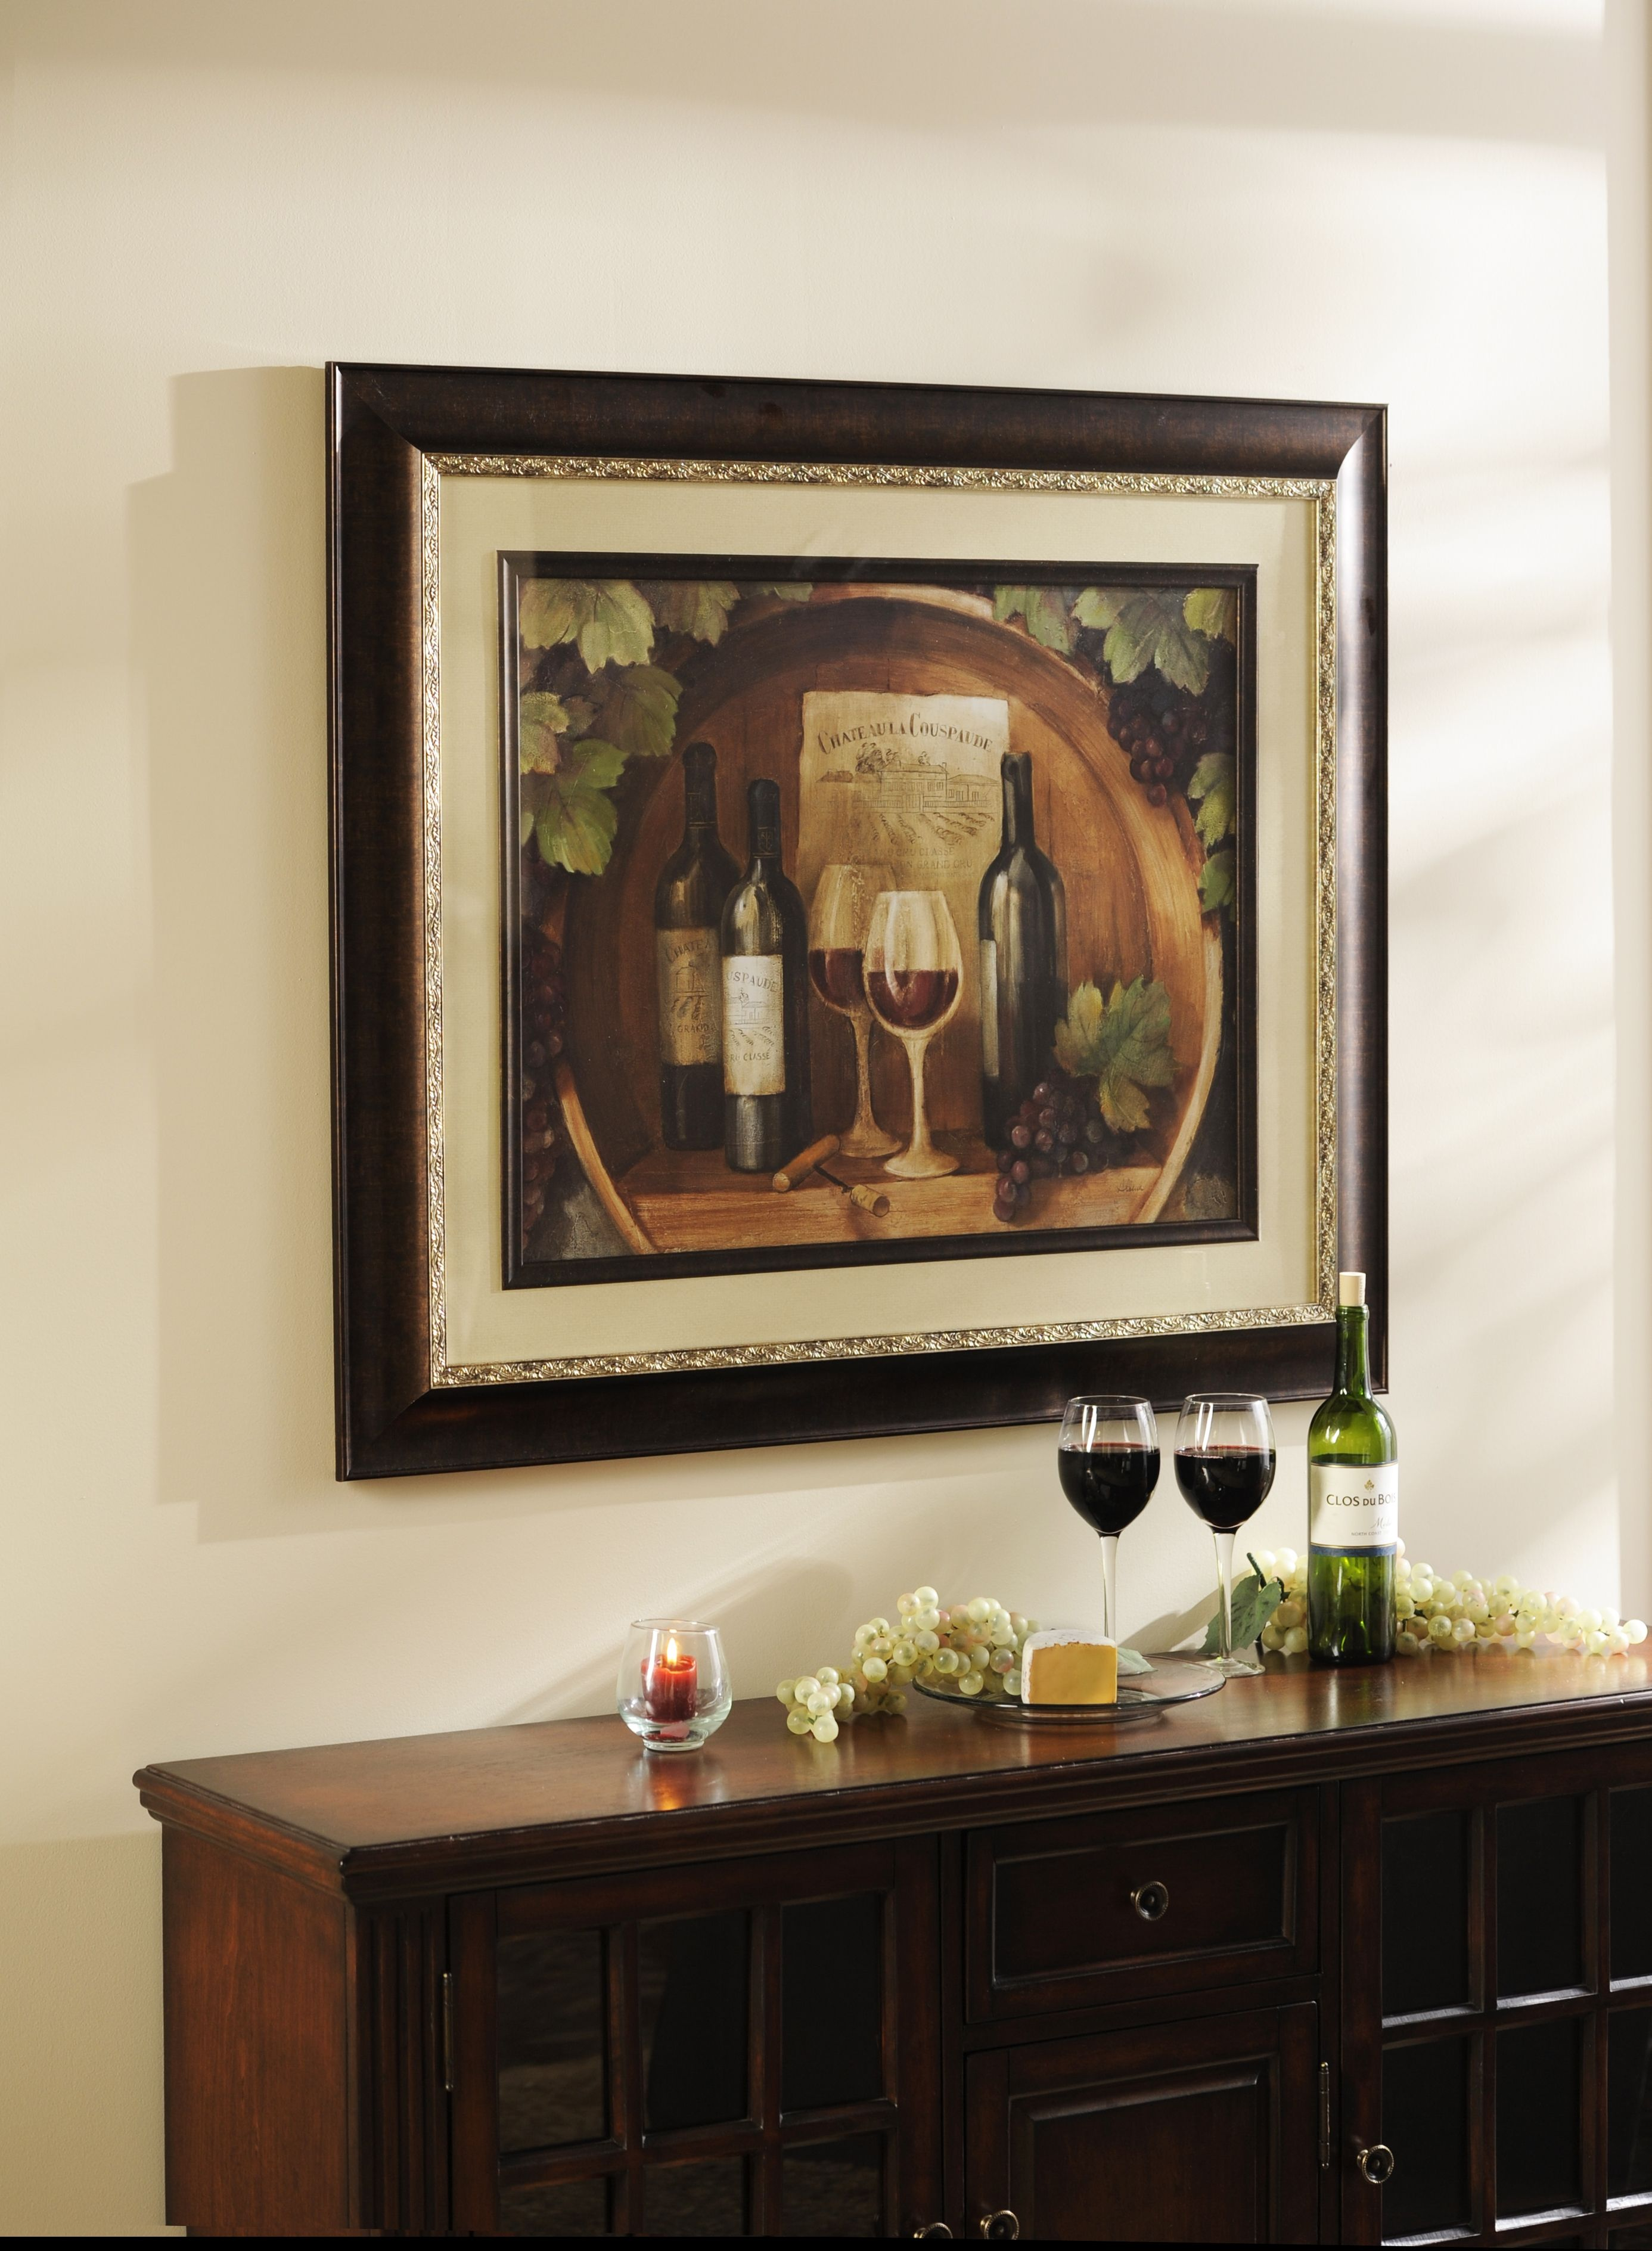 At The Winery Framed Art Print | Decoración